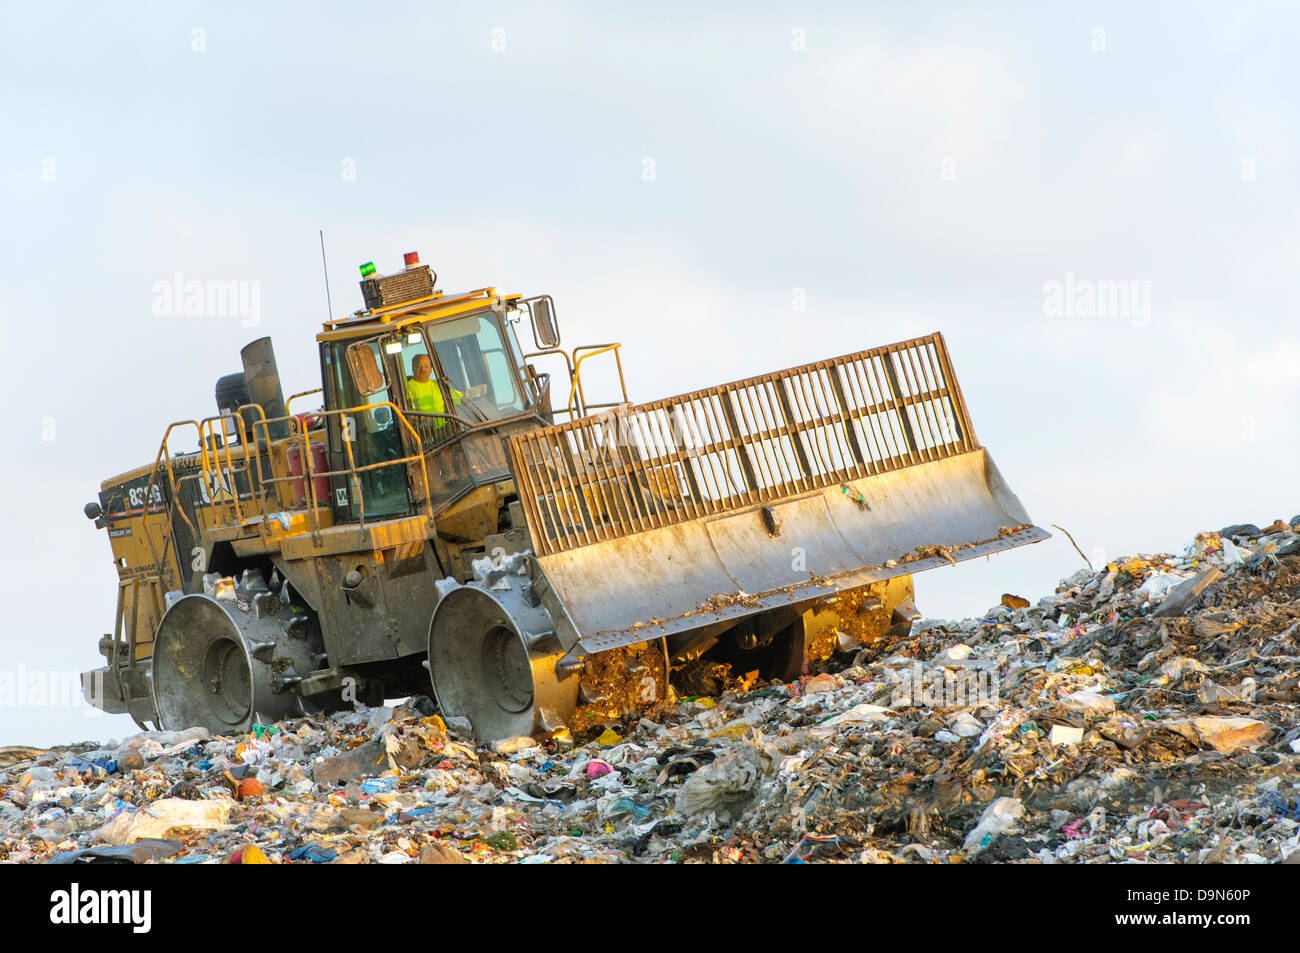 Heavy equipment compacting garbage at a sanitary landfill. - Stock Image